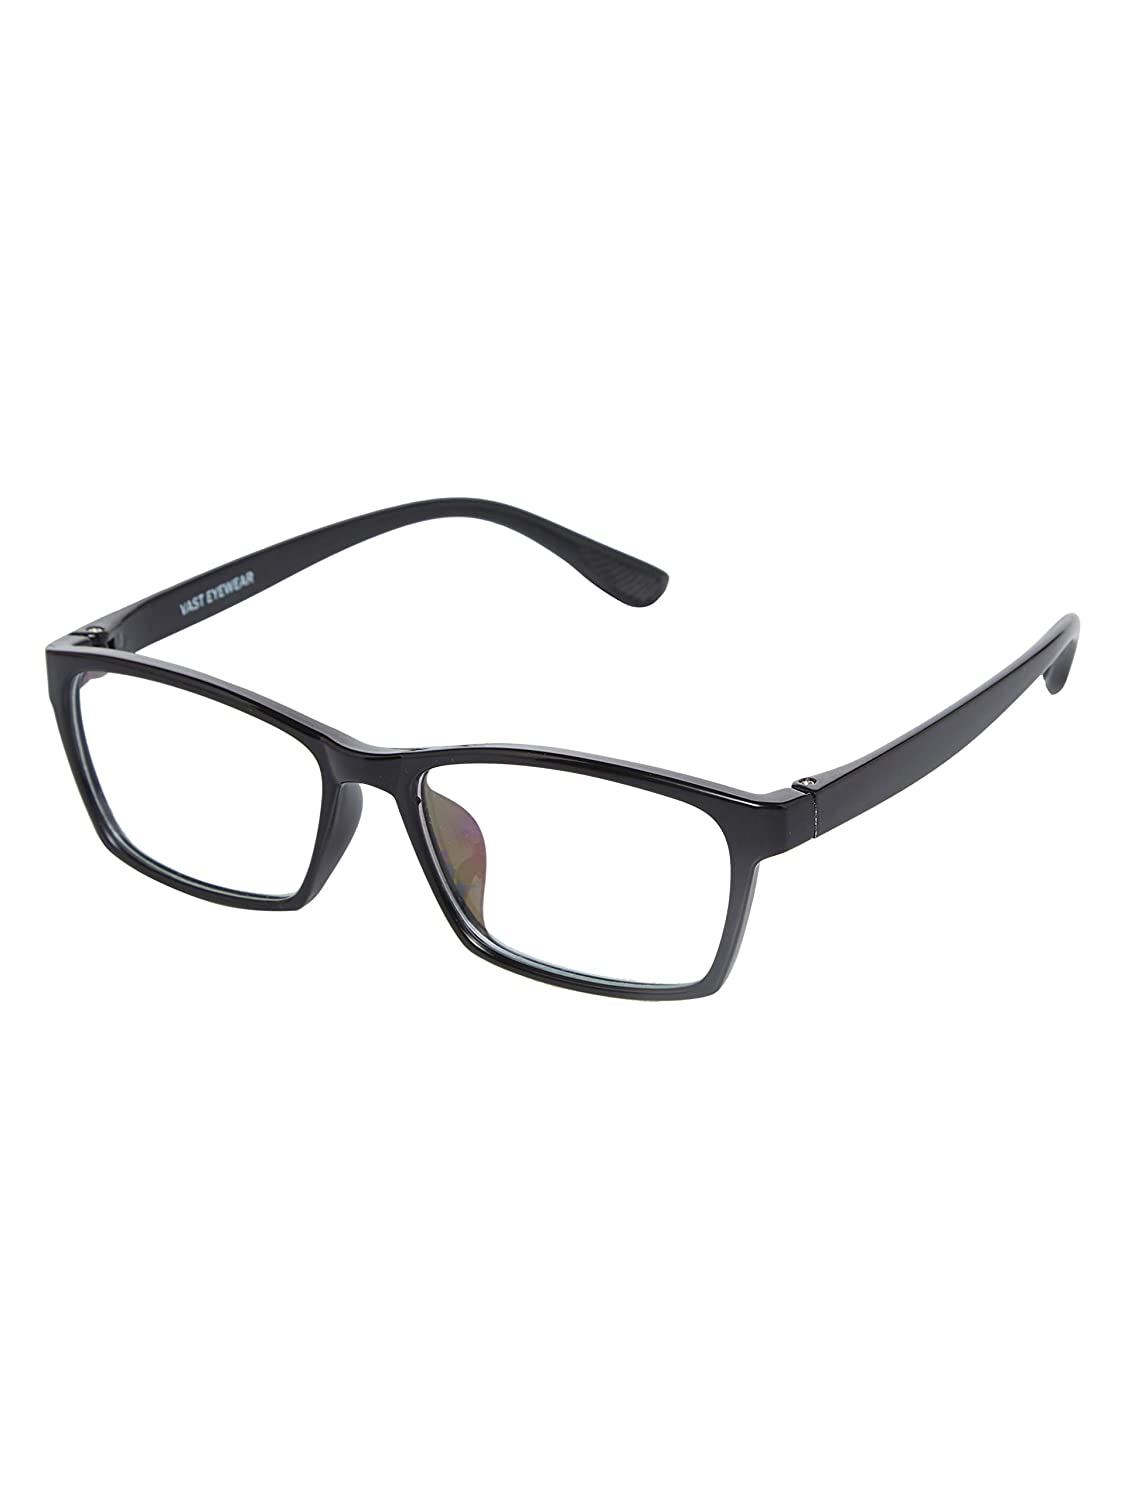 Vast Anti Reflection & Light Weight Strong Black Unisex Spectacle Frame (8013_C1_BLACK_ARC_CLEAR)